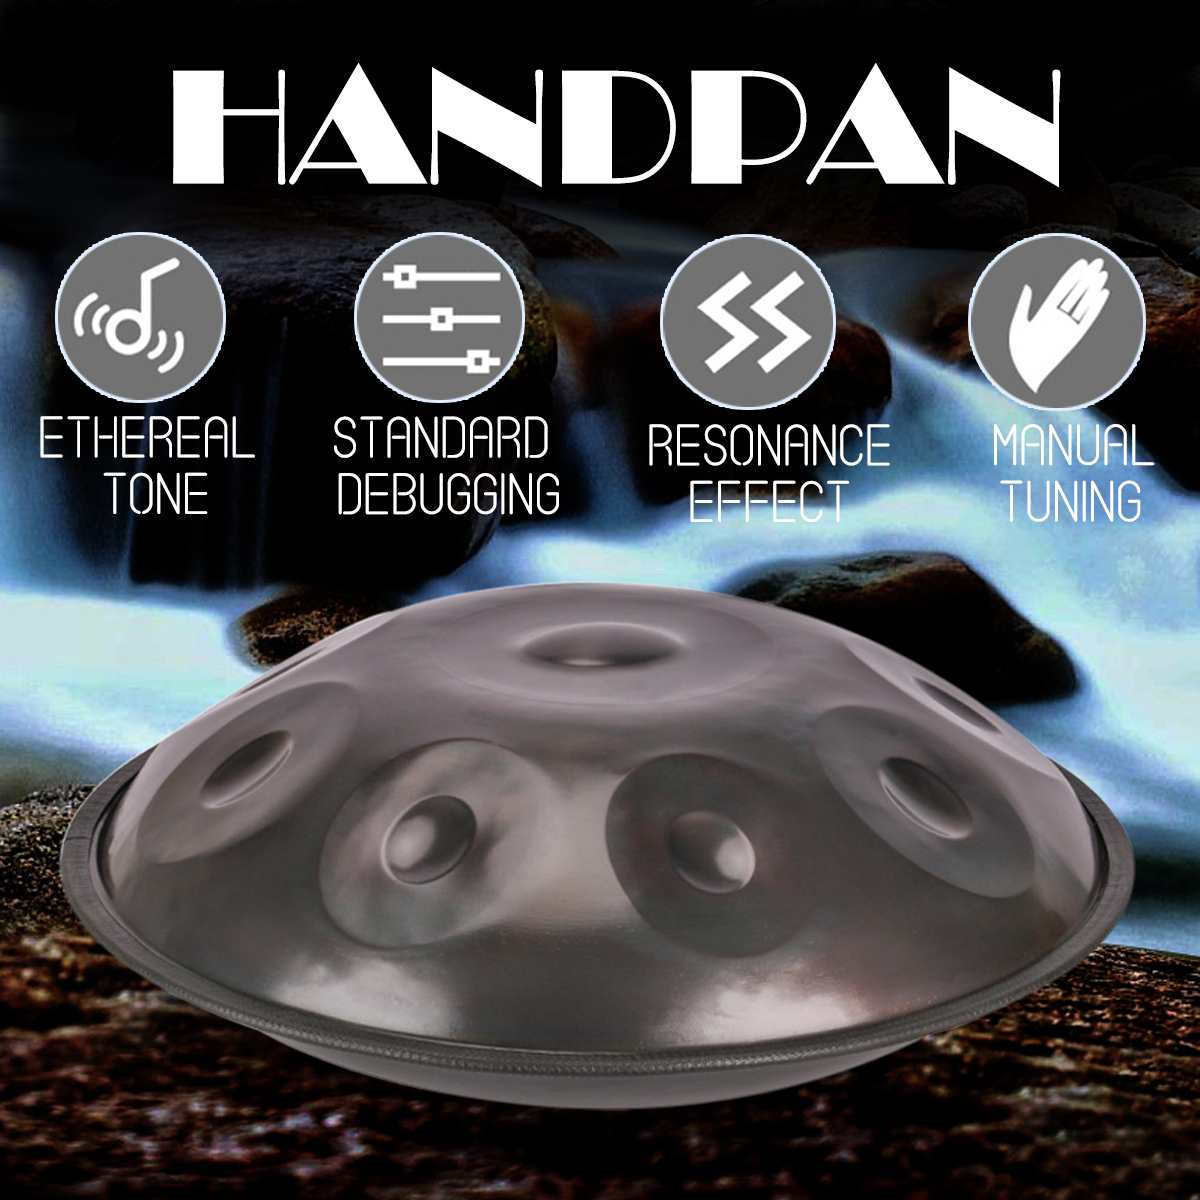 Main Handpan Instrumento Antique Fa majeur Ré Mineur Hang Drum 9 Notes Musique Main pan Batterie Percussion Instruments de Musique 432 hz